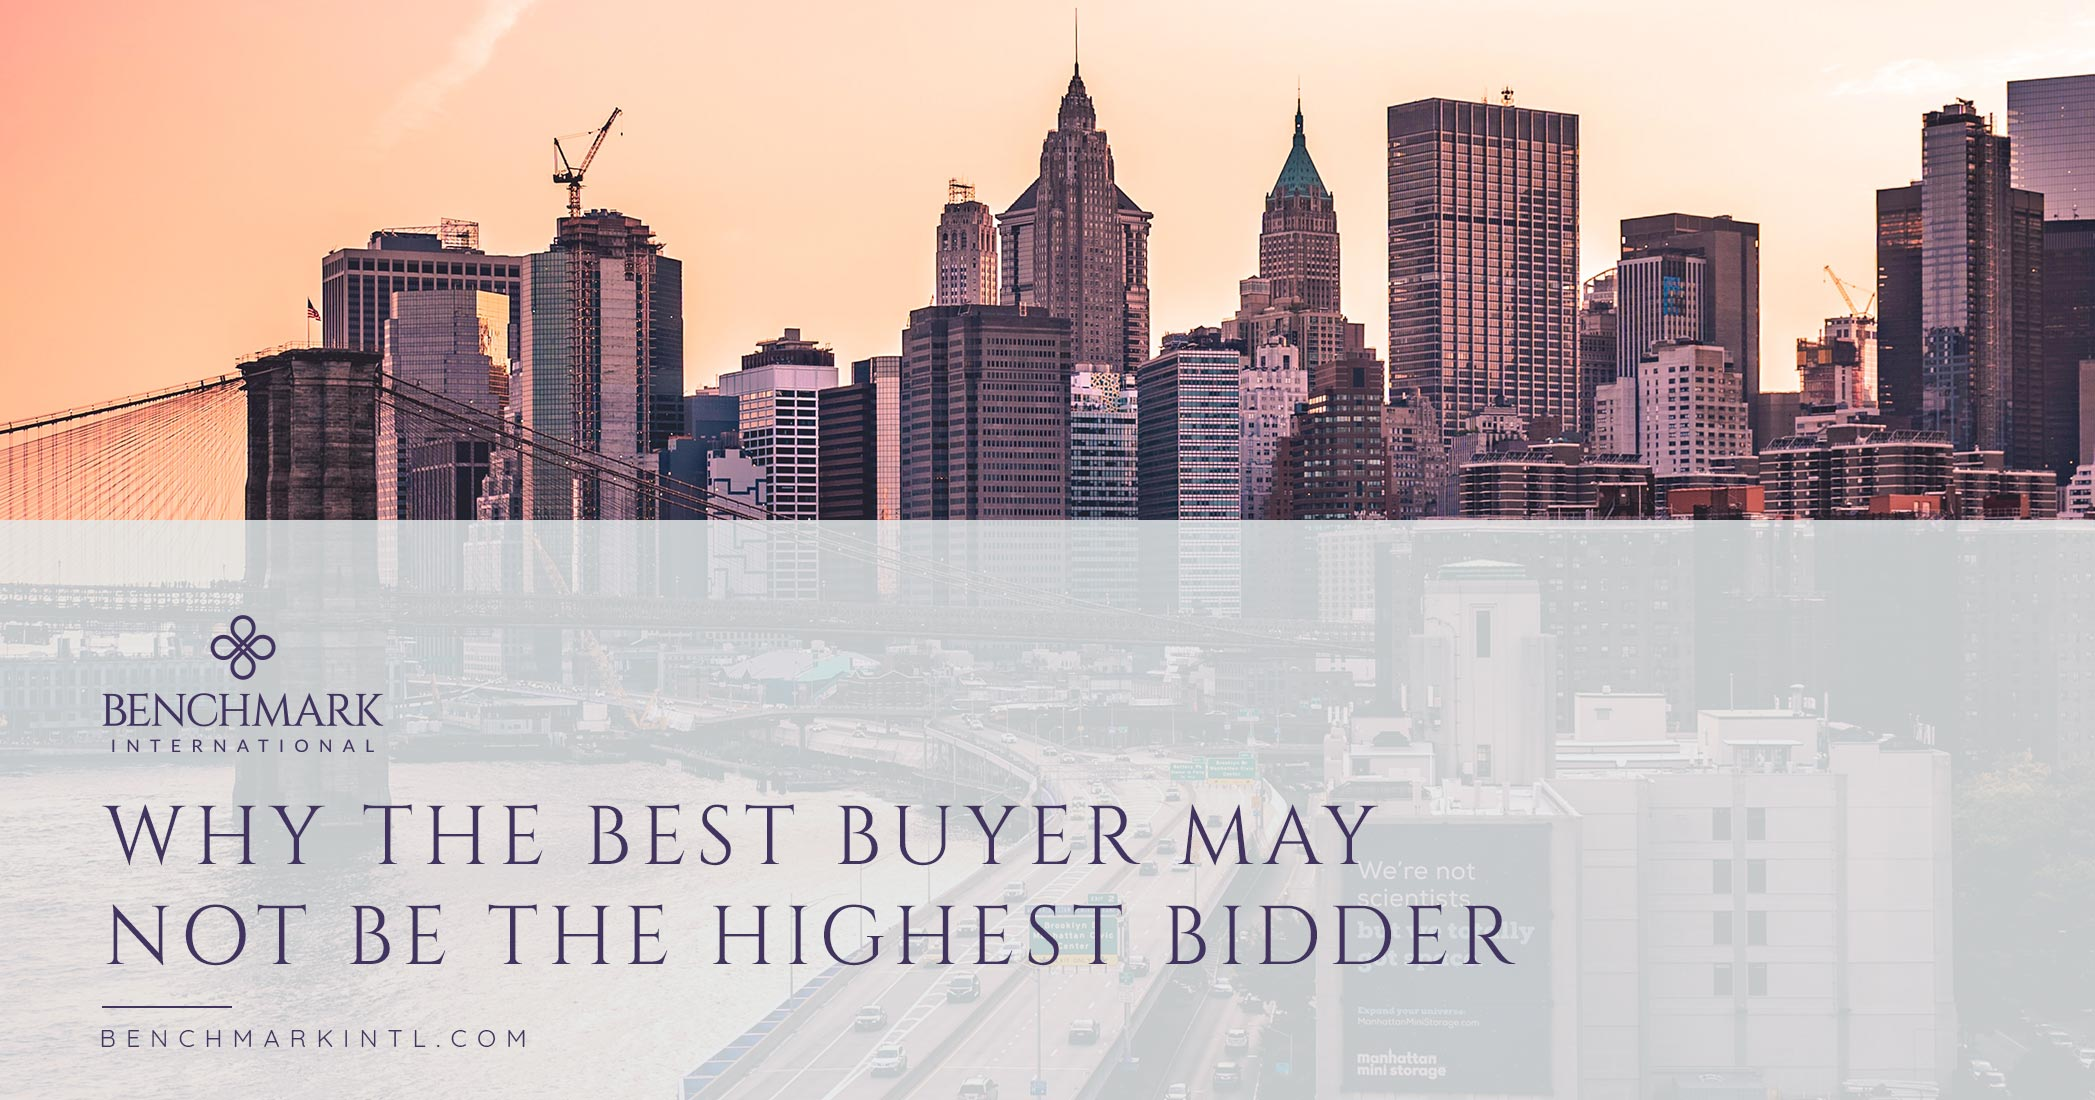 Why the Best Buyer May Not Be the Highest Bidder